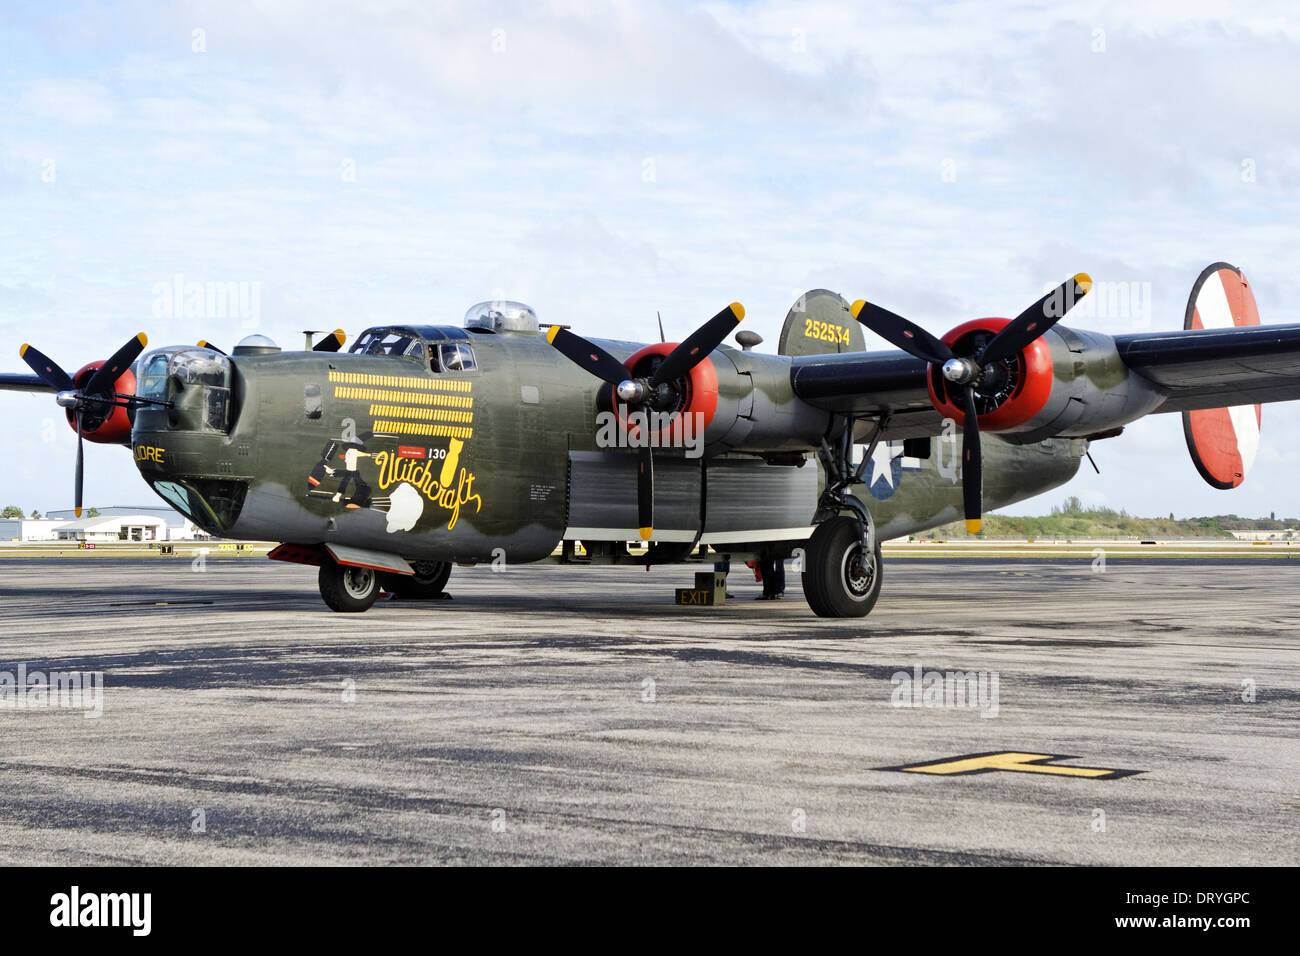 Consolidated B-24 Liberator 'Witchcraft' - Stock Image